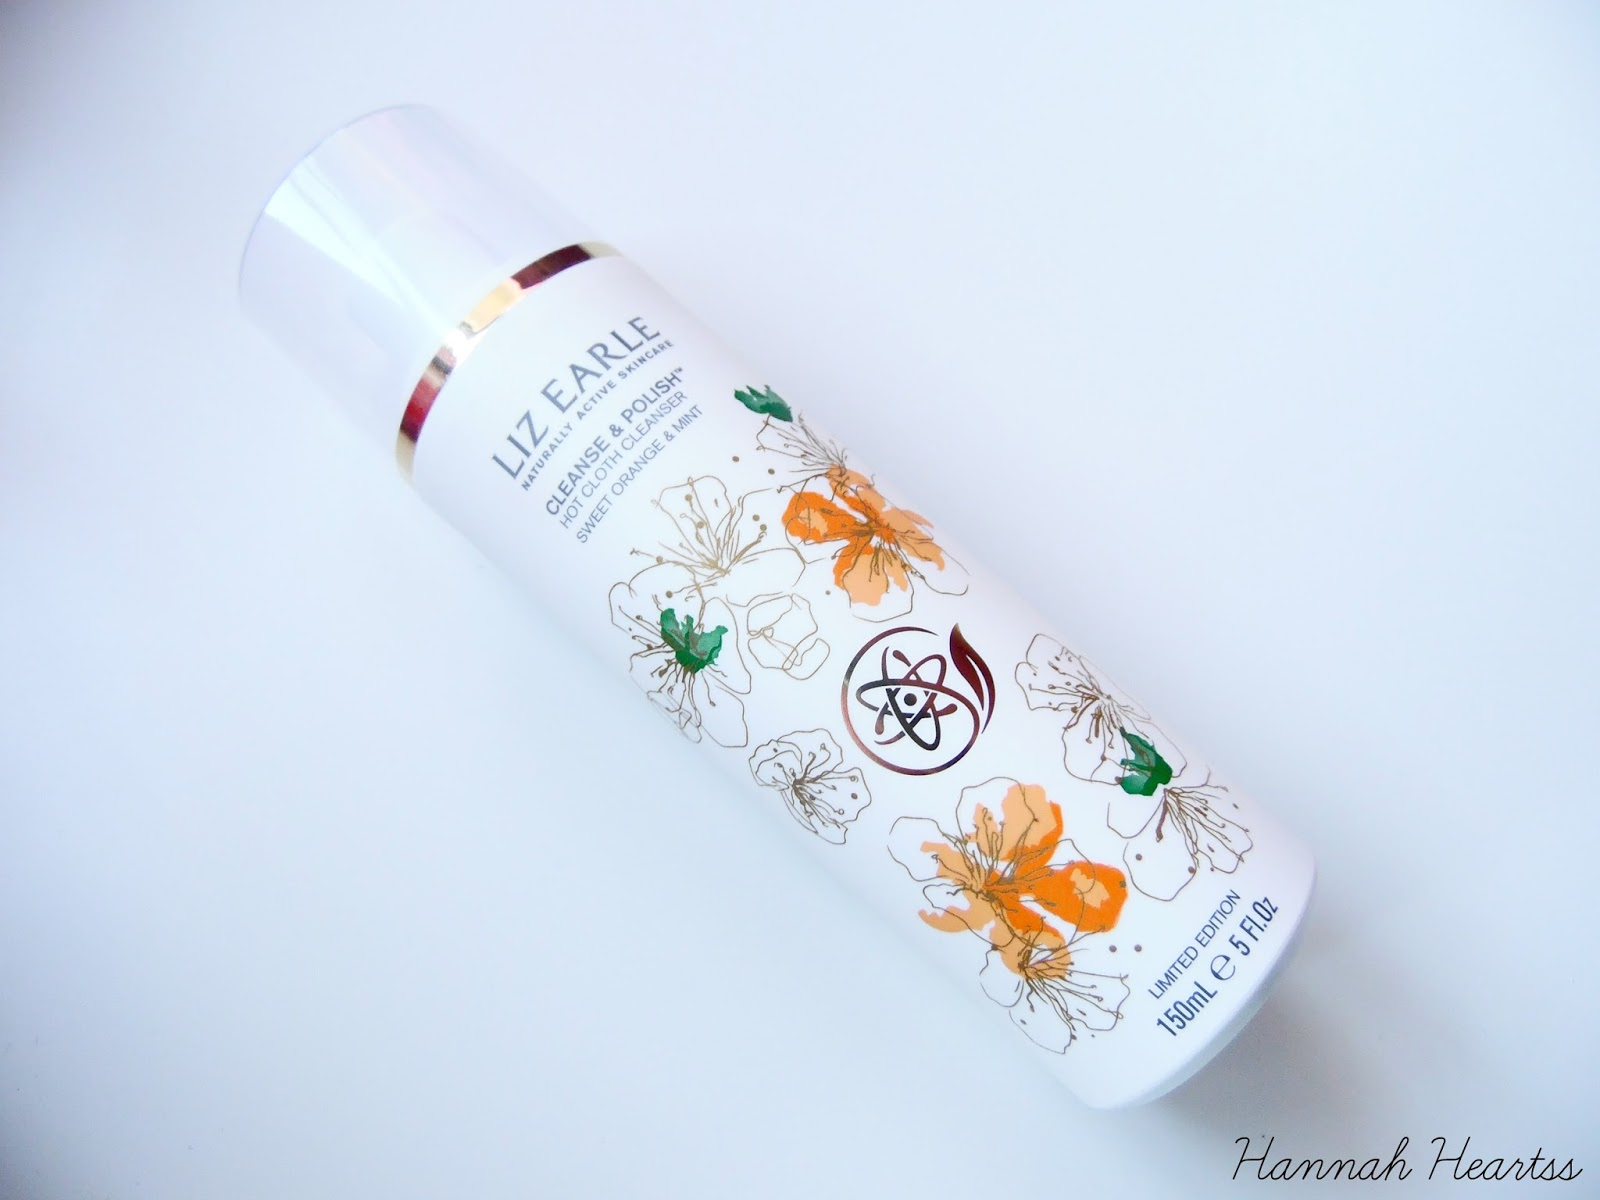 Liz Earle Sweet Orange & Mint Cleanse & Polish